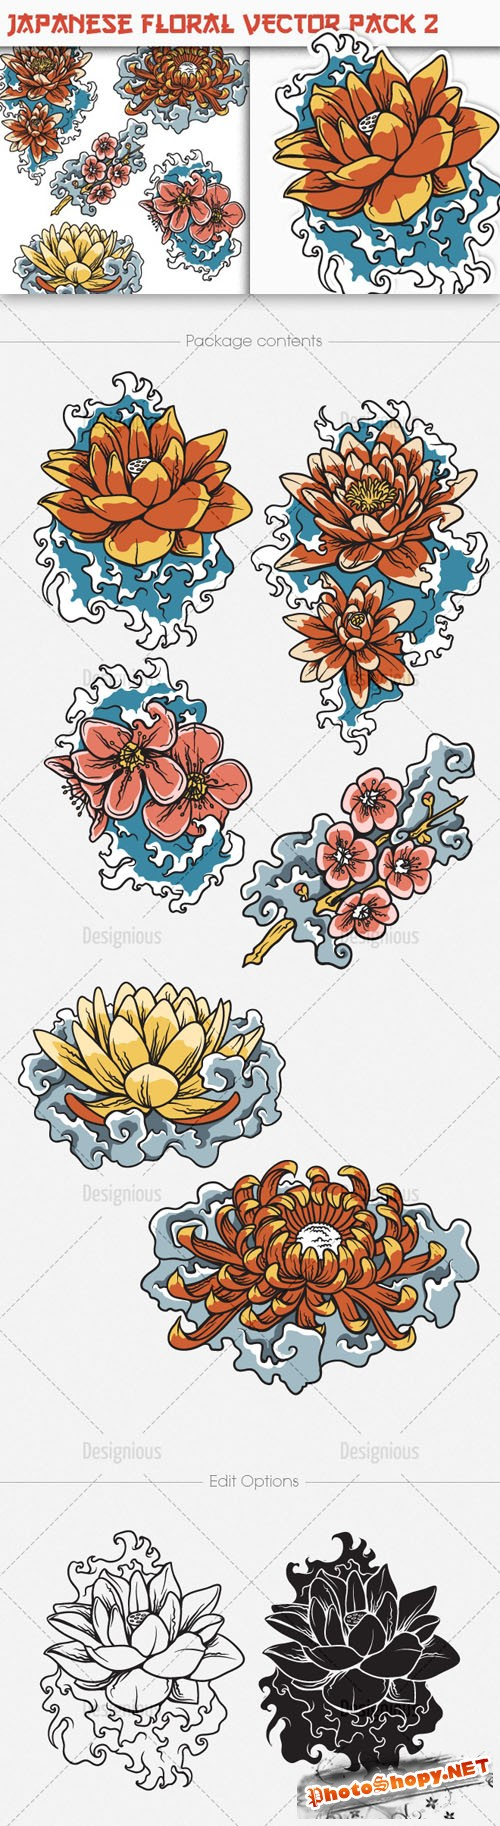 Japanese Flowers Photoshop Vector Pack 2